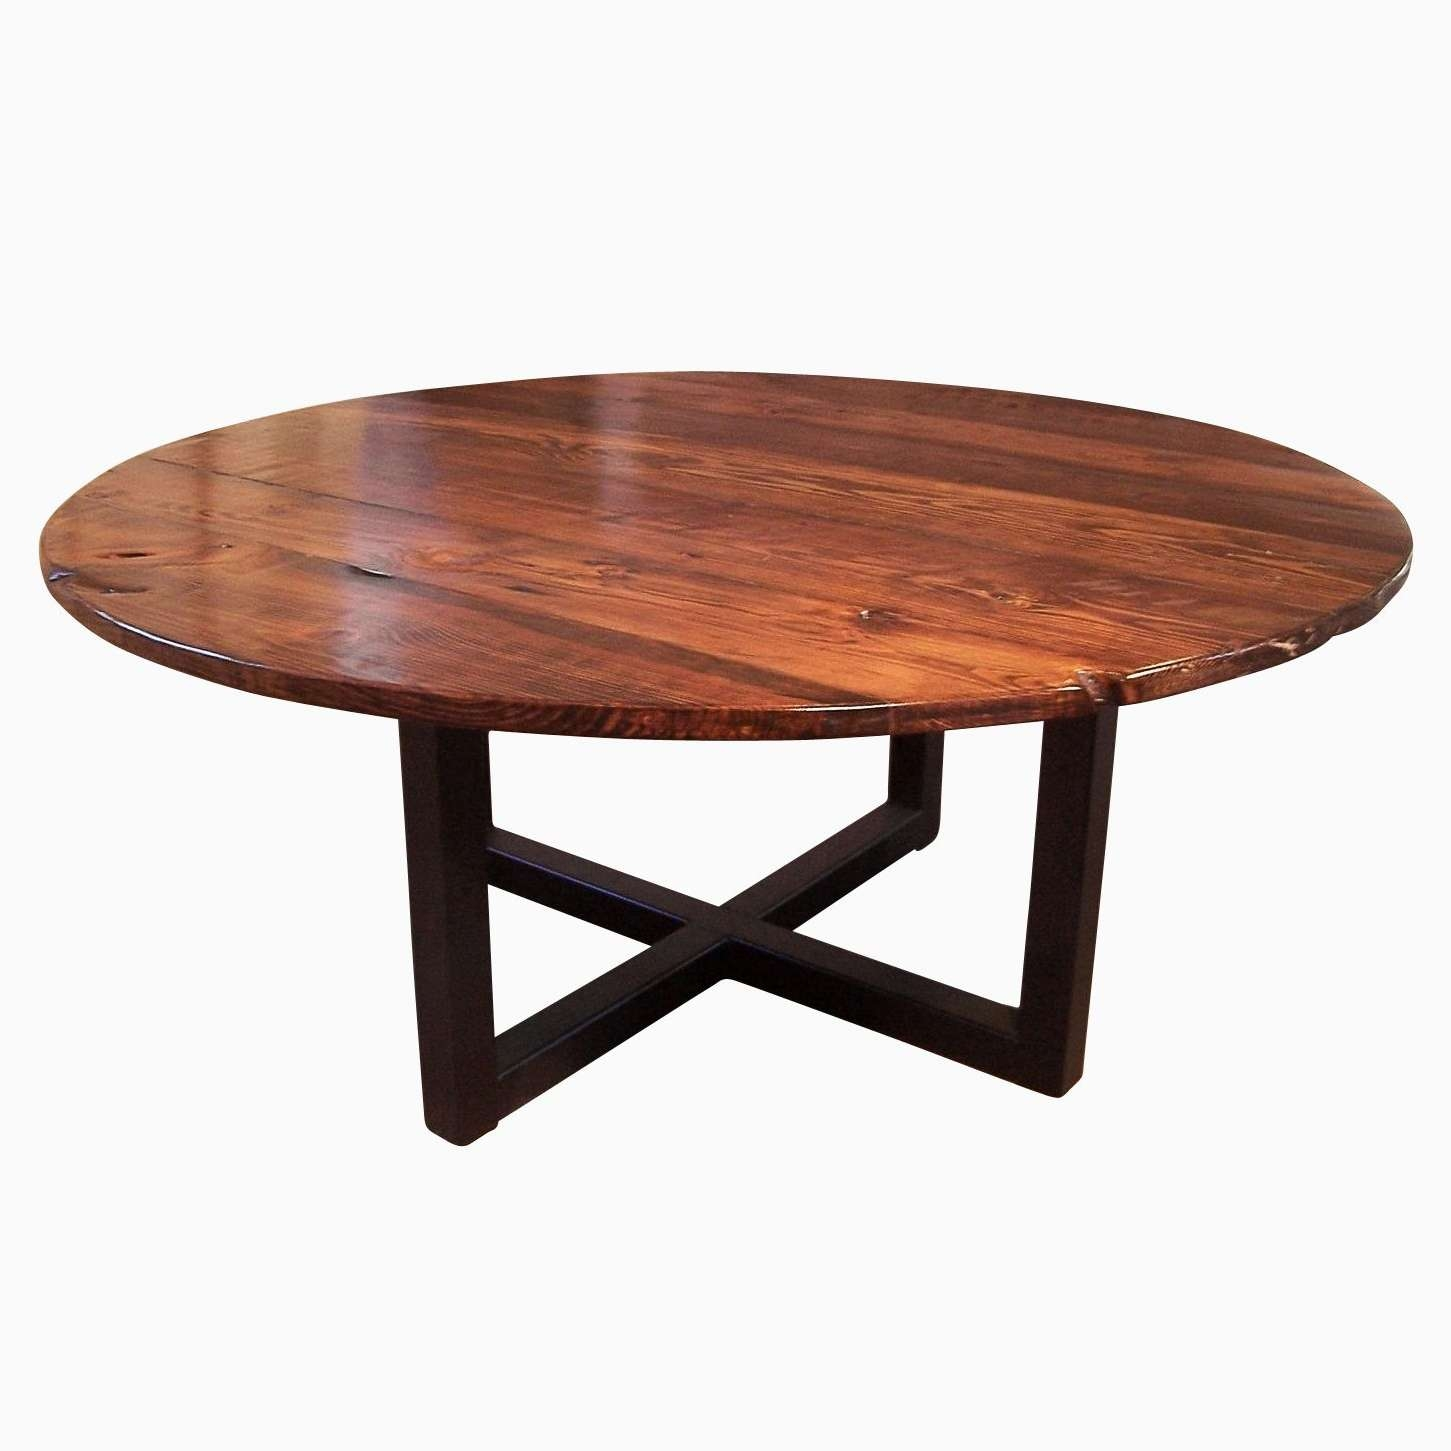 Buy A Hand Crafted Large Round Coffee Table With Industrial Metal Throughout Most Recently Released Industrial Round Coffee Tables (View 11 of 20)